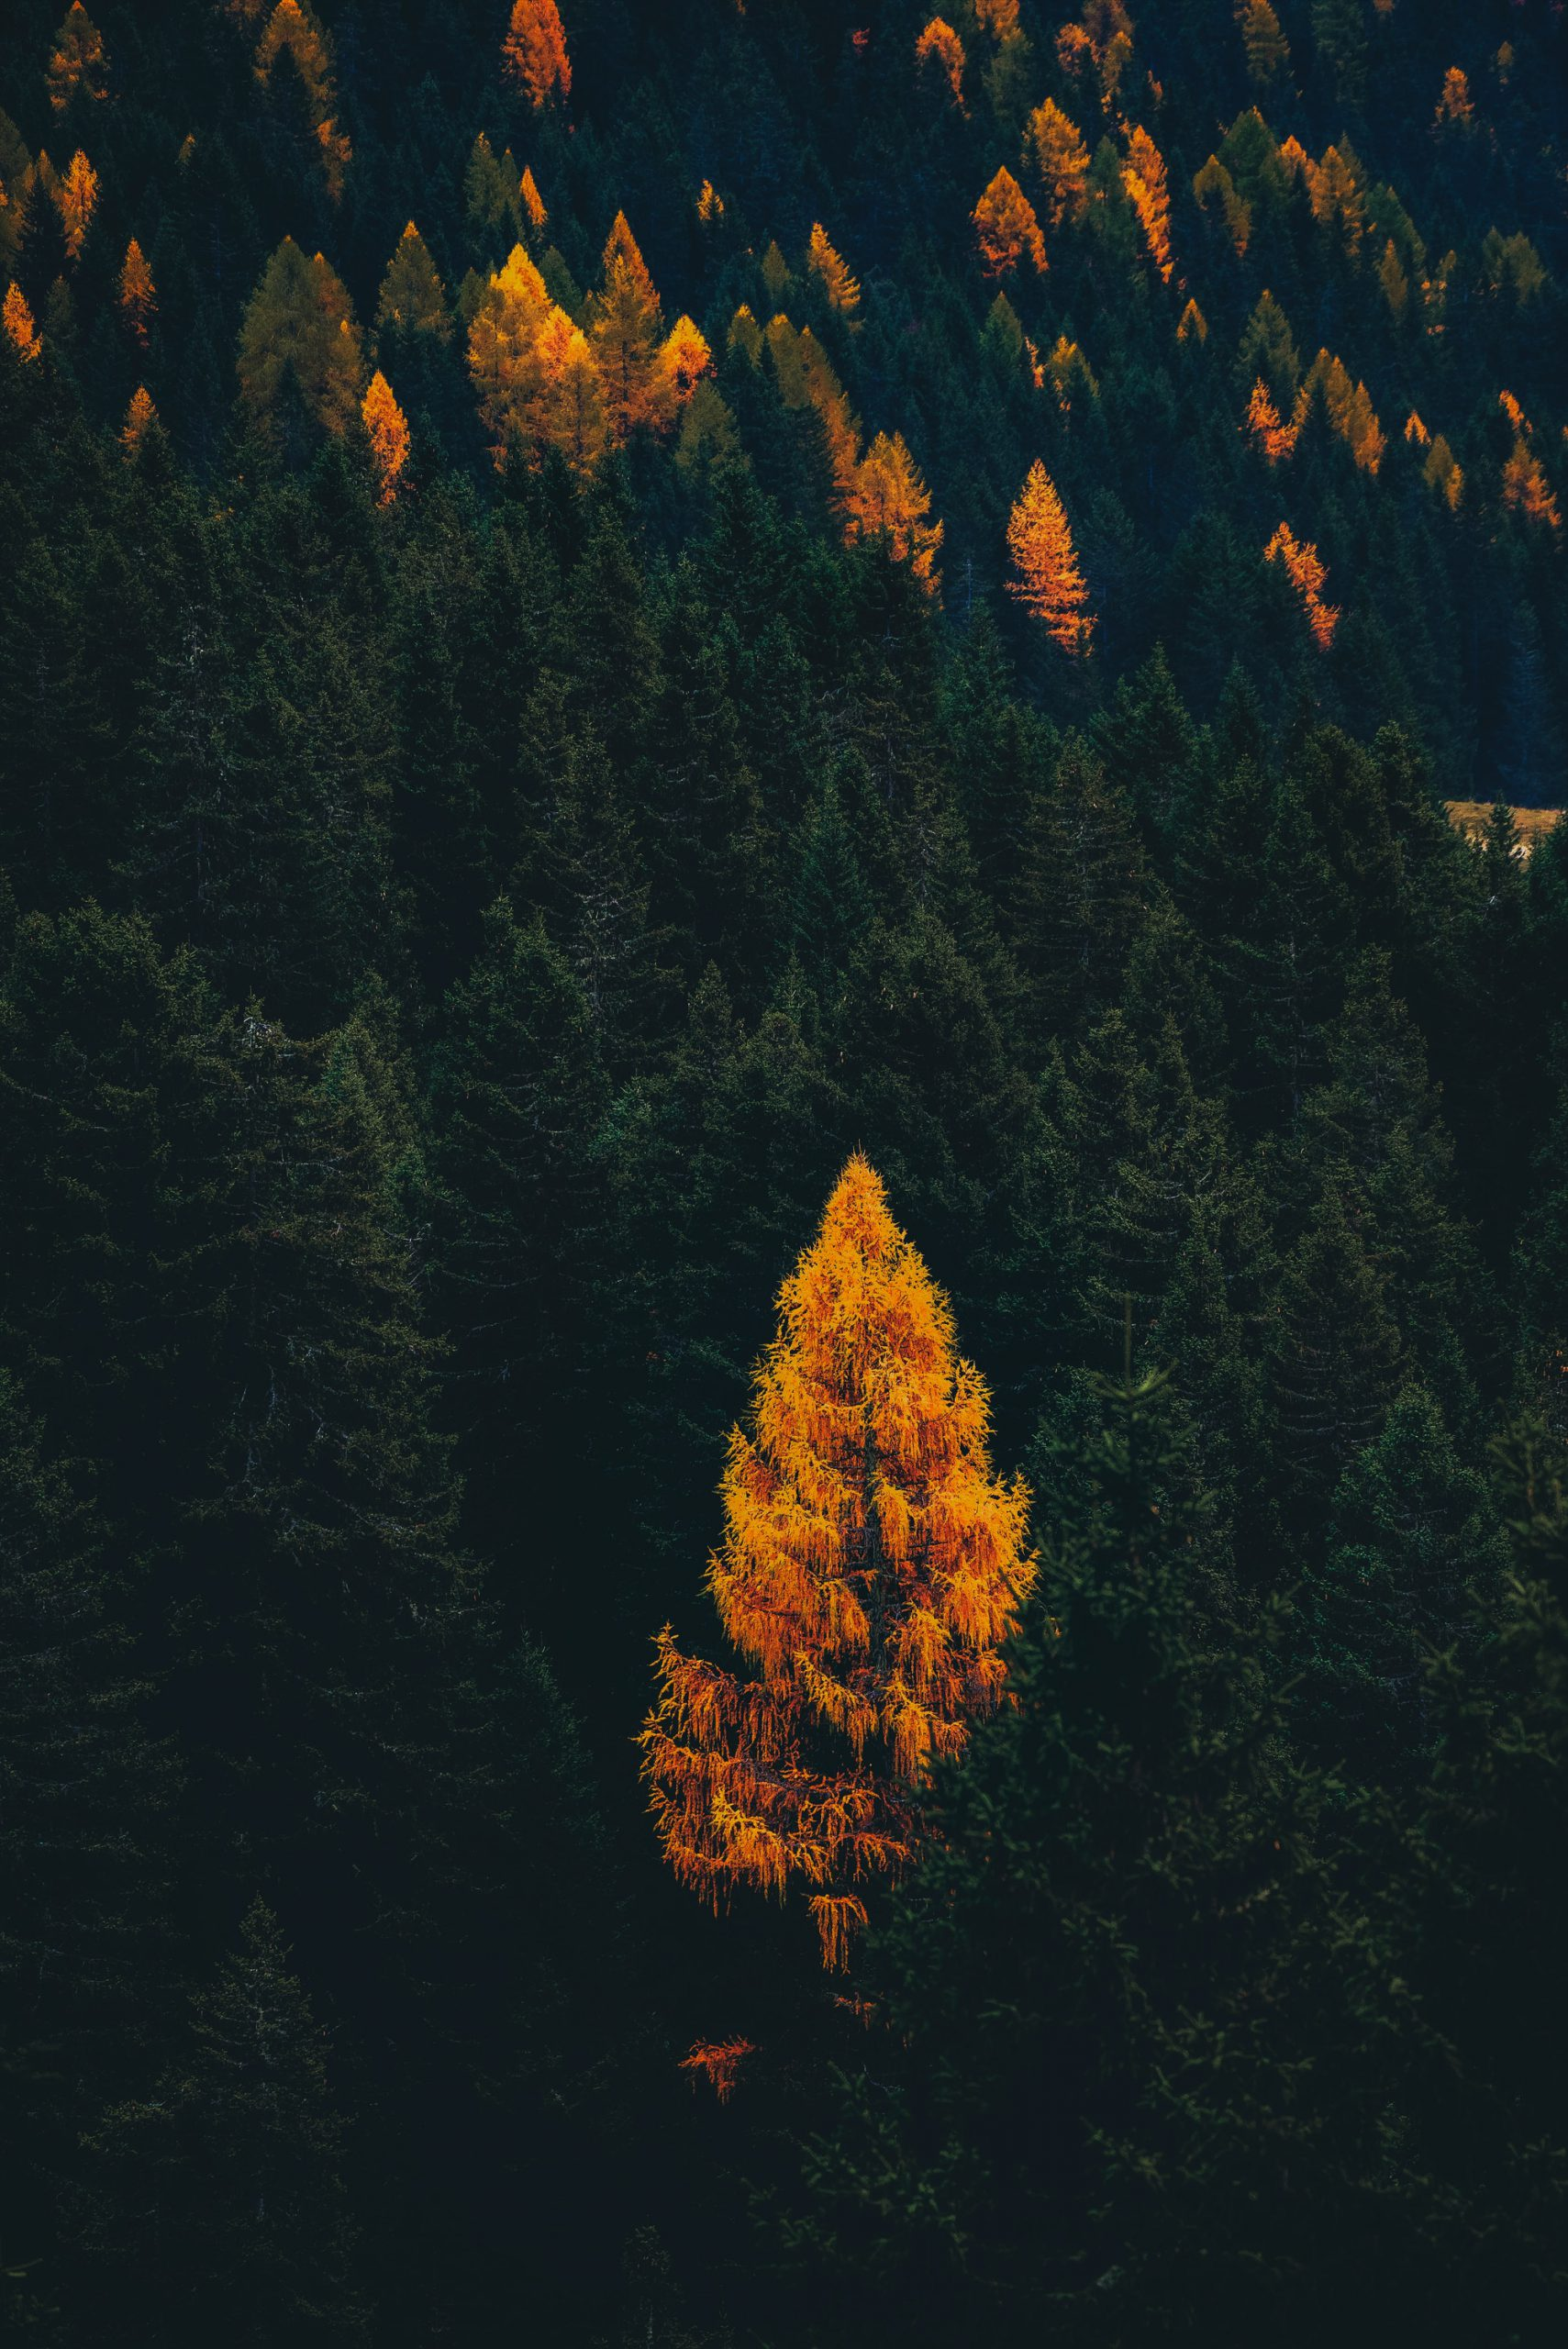 green and brown trees during daytime